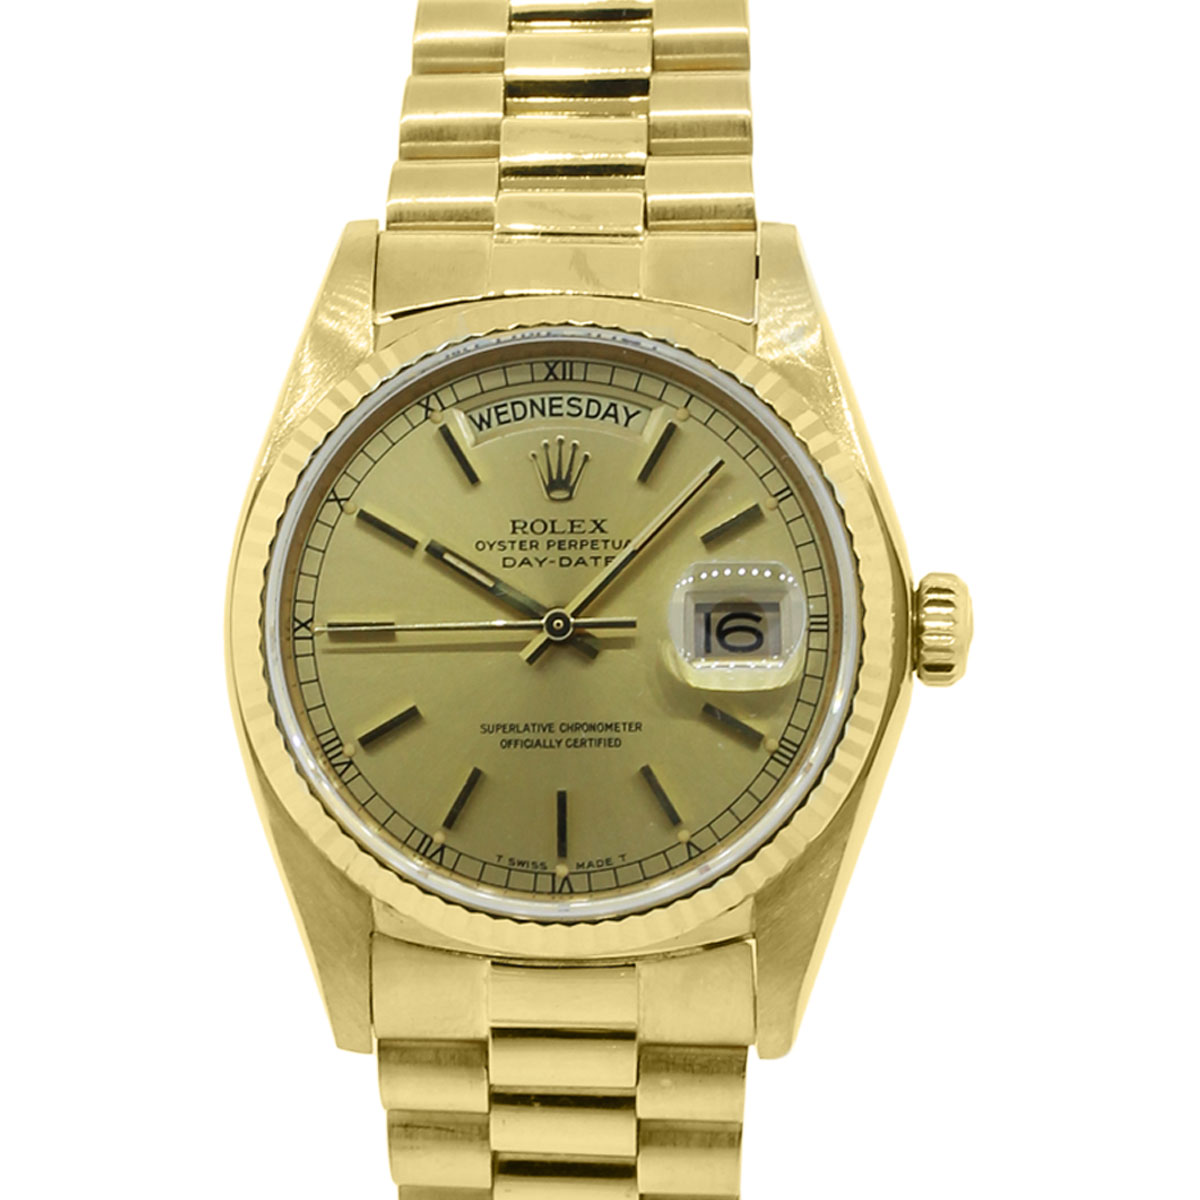 You are viewing this Rolex Day-Date 18038 18k Yellow Gold Presidential Watch!